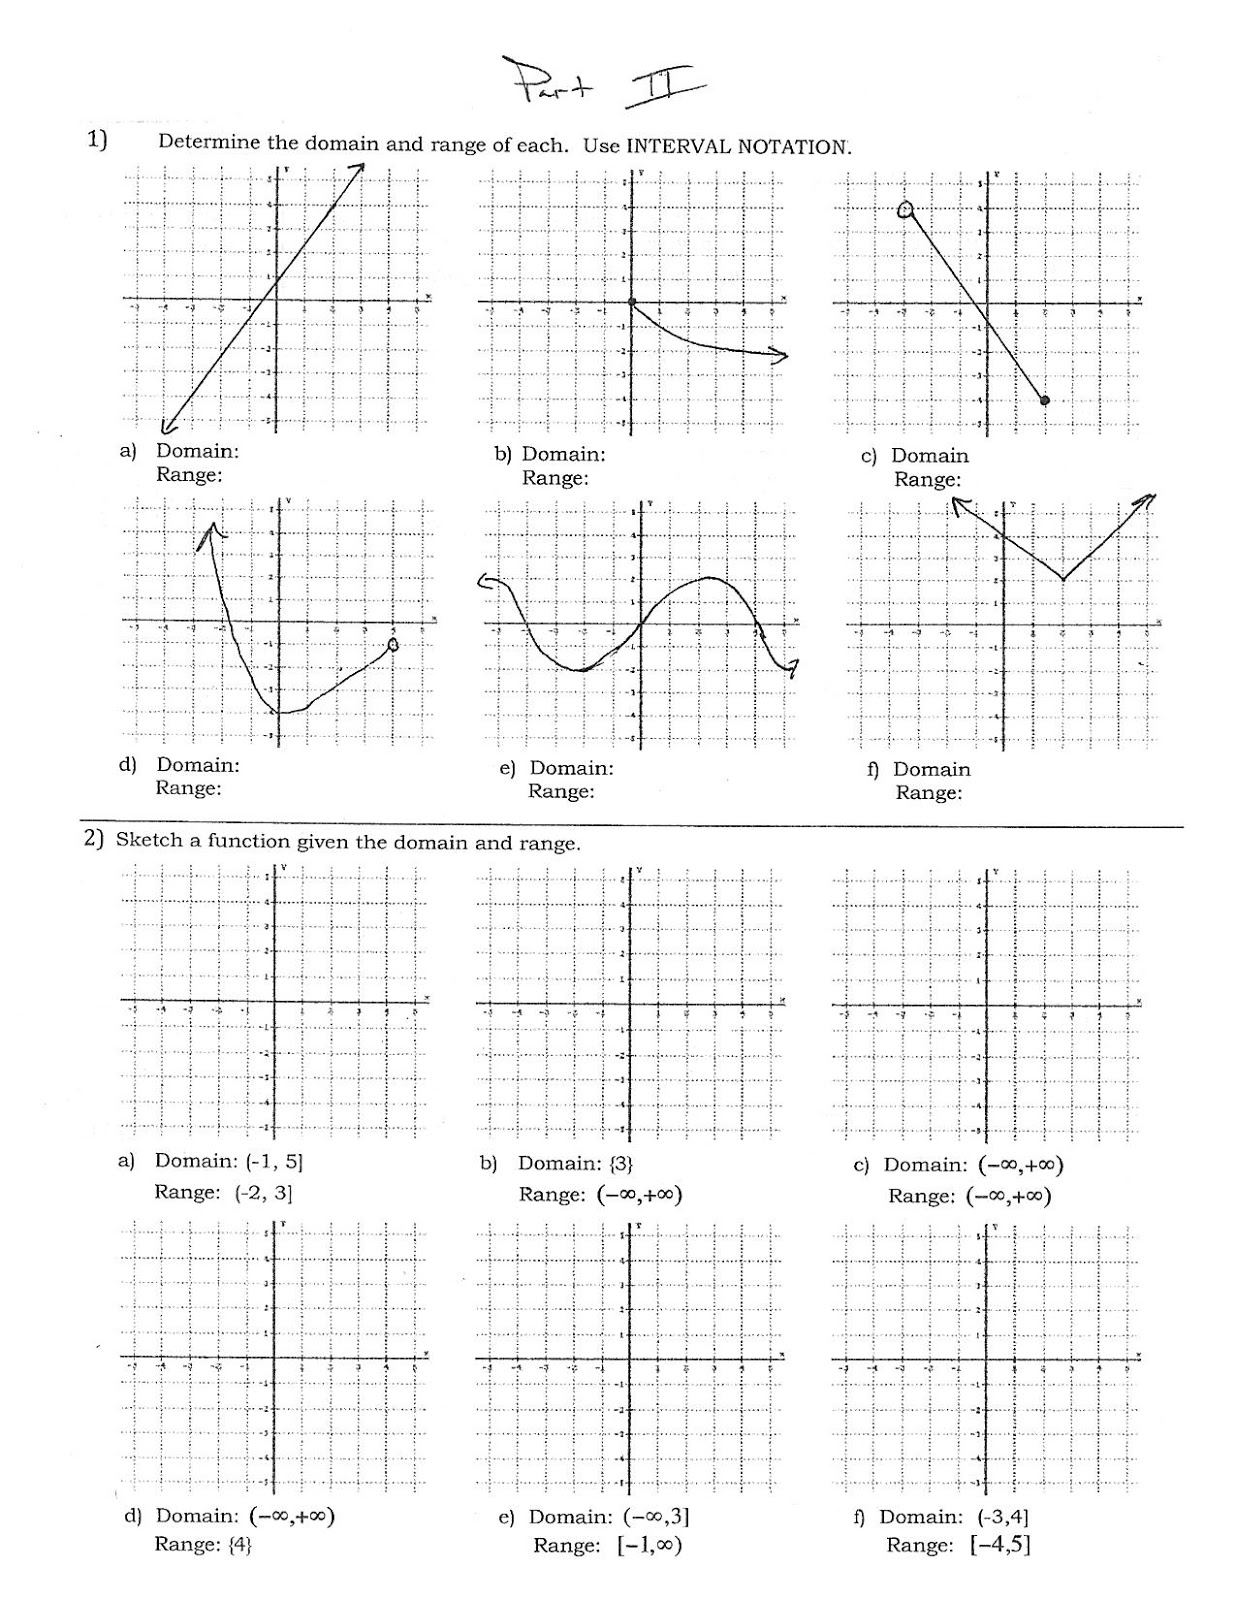 Printables Domain And Range Worksheet printables domain and range worksheets with answers fireyourmentor free printable pre calculus worksheet does taking adderall help you study for aqa maths past